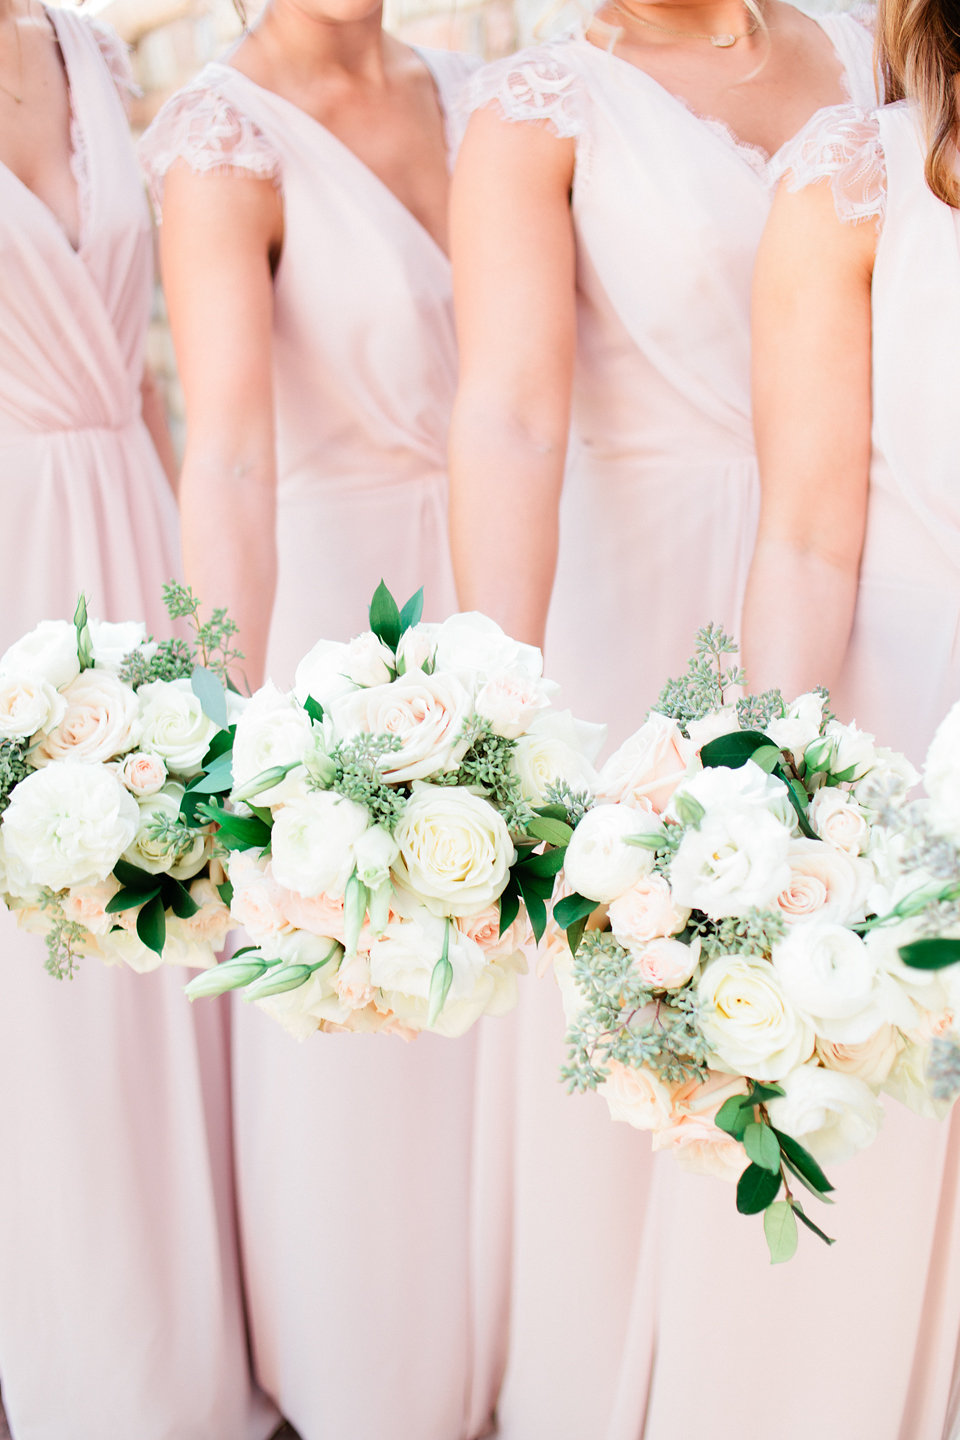 Bouquets of garden roses, eucalyptus, peonies soft blush